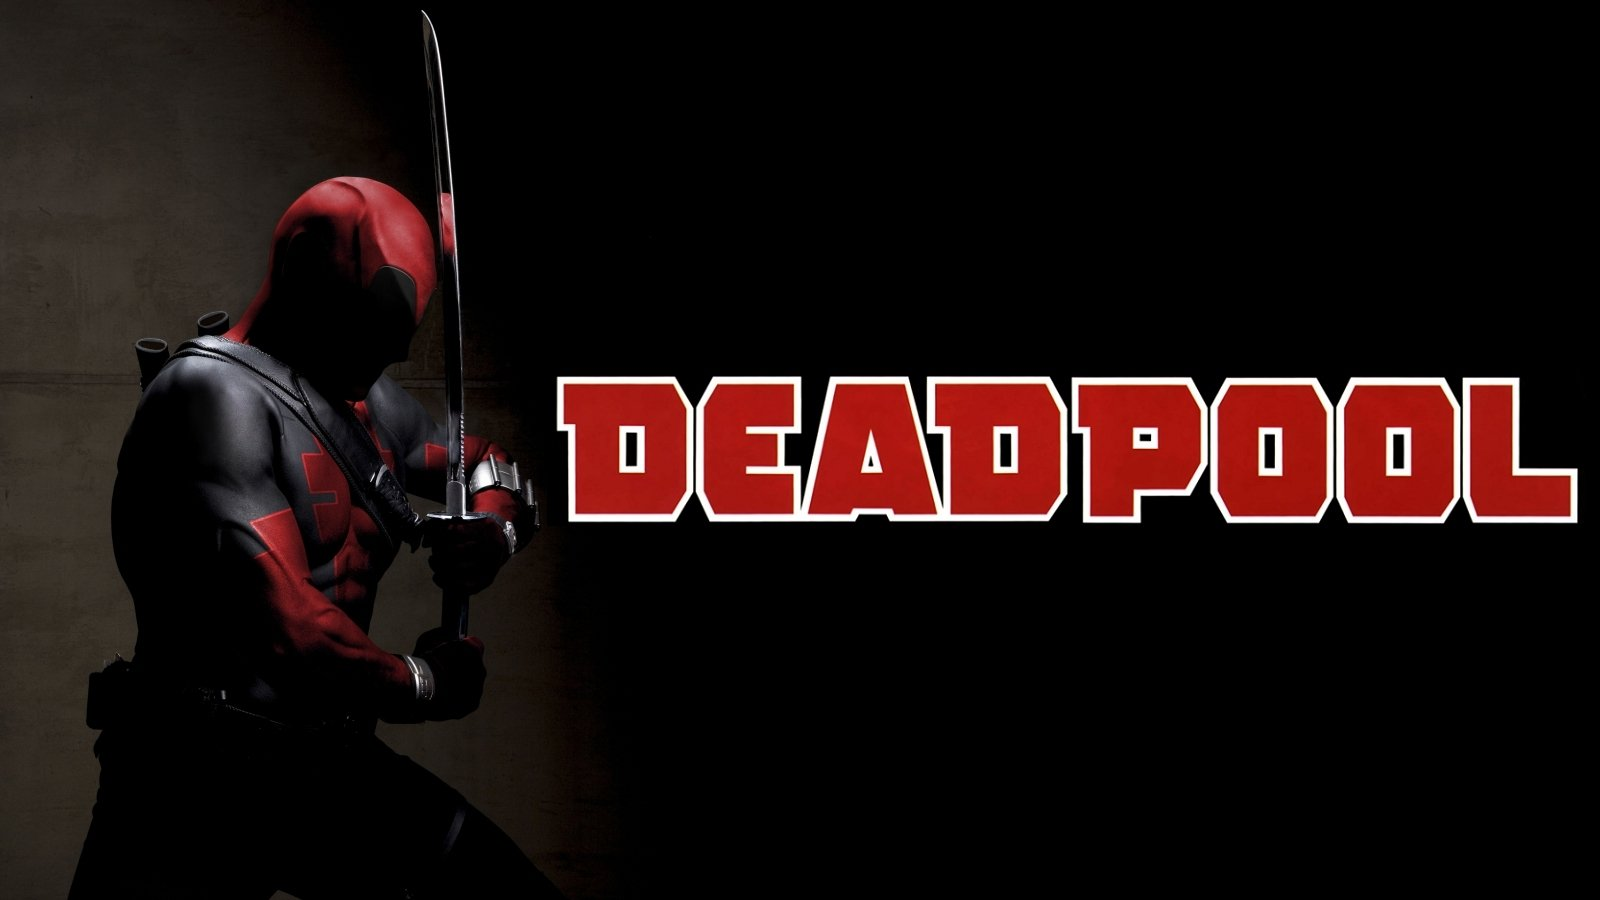 747 deadpool hd wallpapers background images wallpaper abyss hd wallpaper background image id74493 voltagebd Choice Image